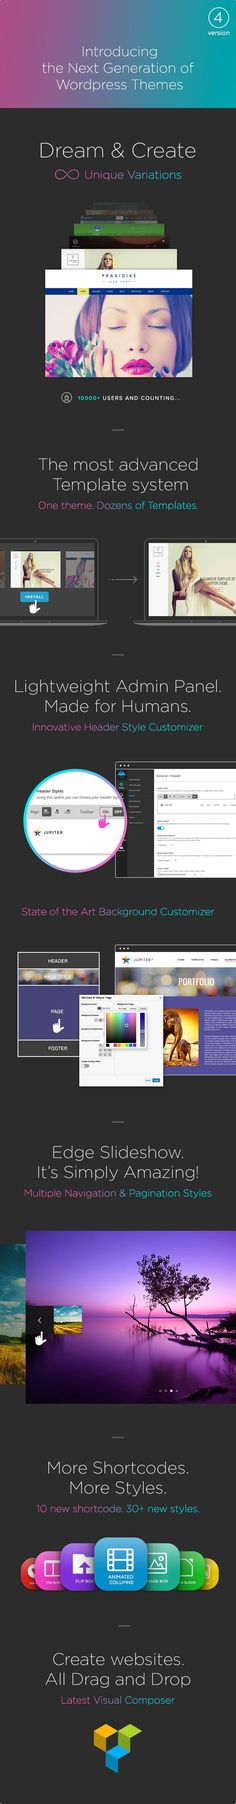 Jupiter - Multi-Purpose Responsive Theme | Wordpress, Wordpress ...